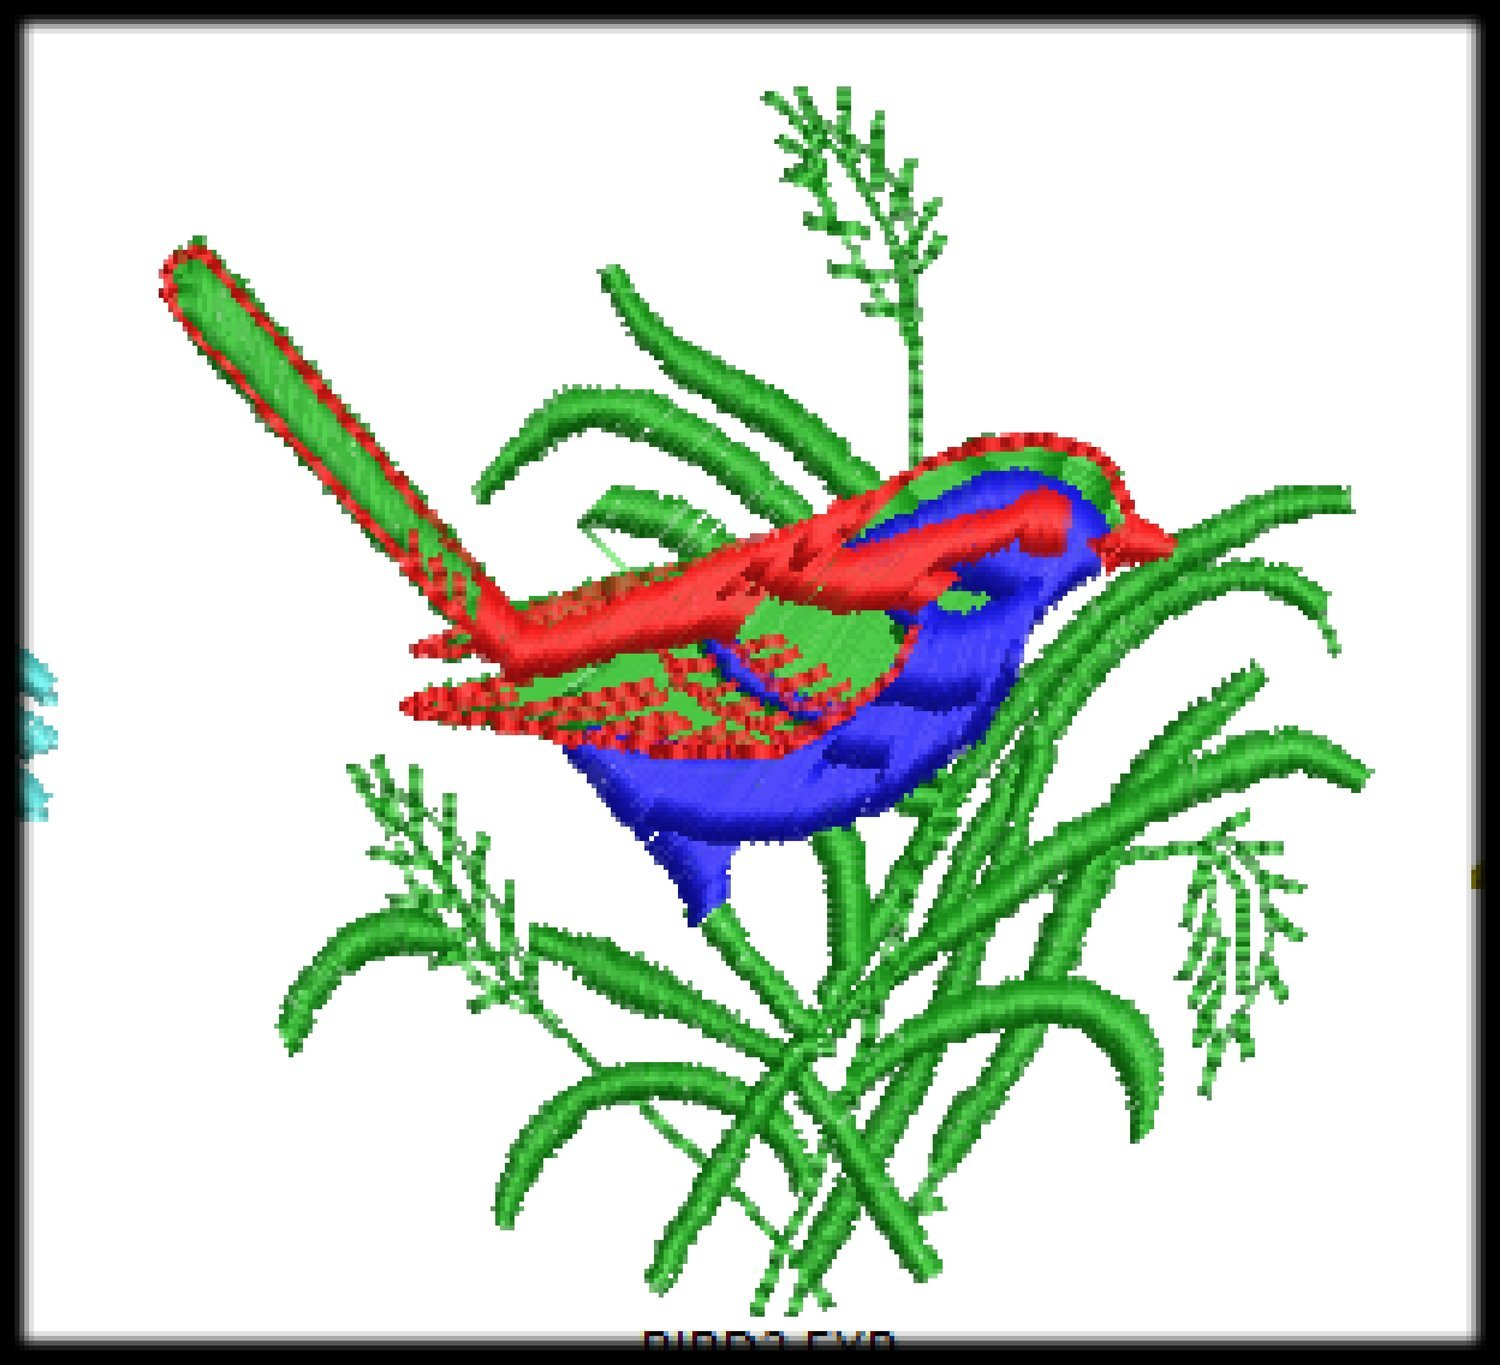 54 Birds Embroidery File Digitized Designs to run any Embroidery Machines Format